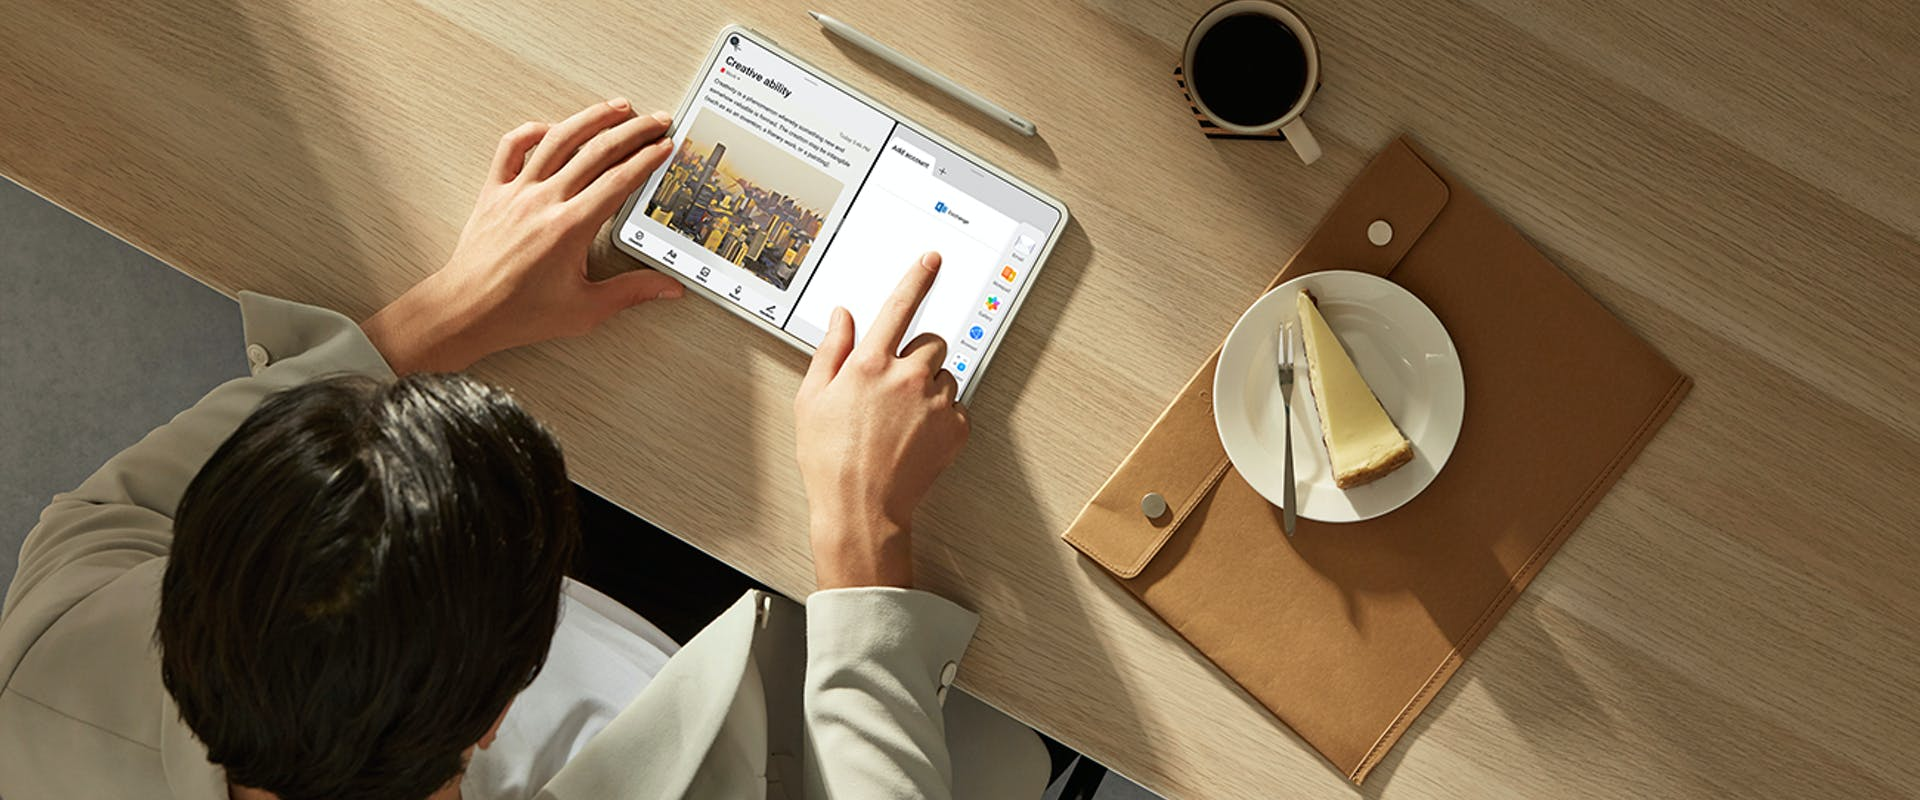 Huawei MatePad: An All-In-One Companion For Content And Convenience